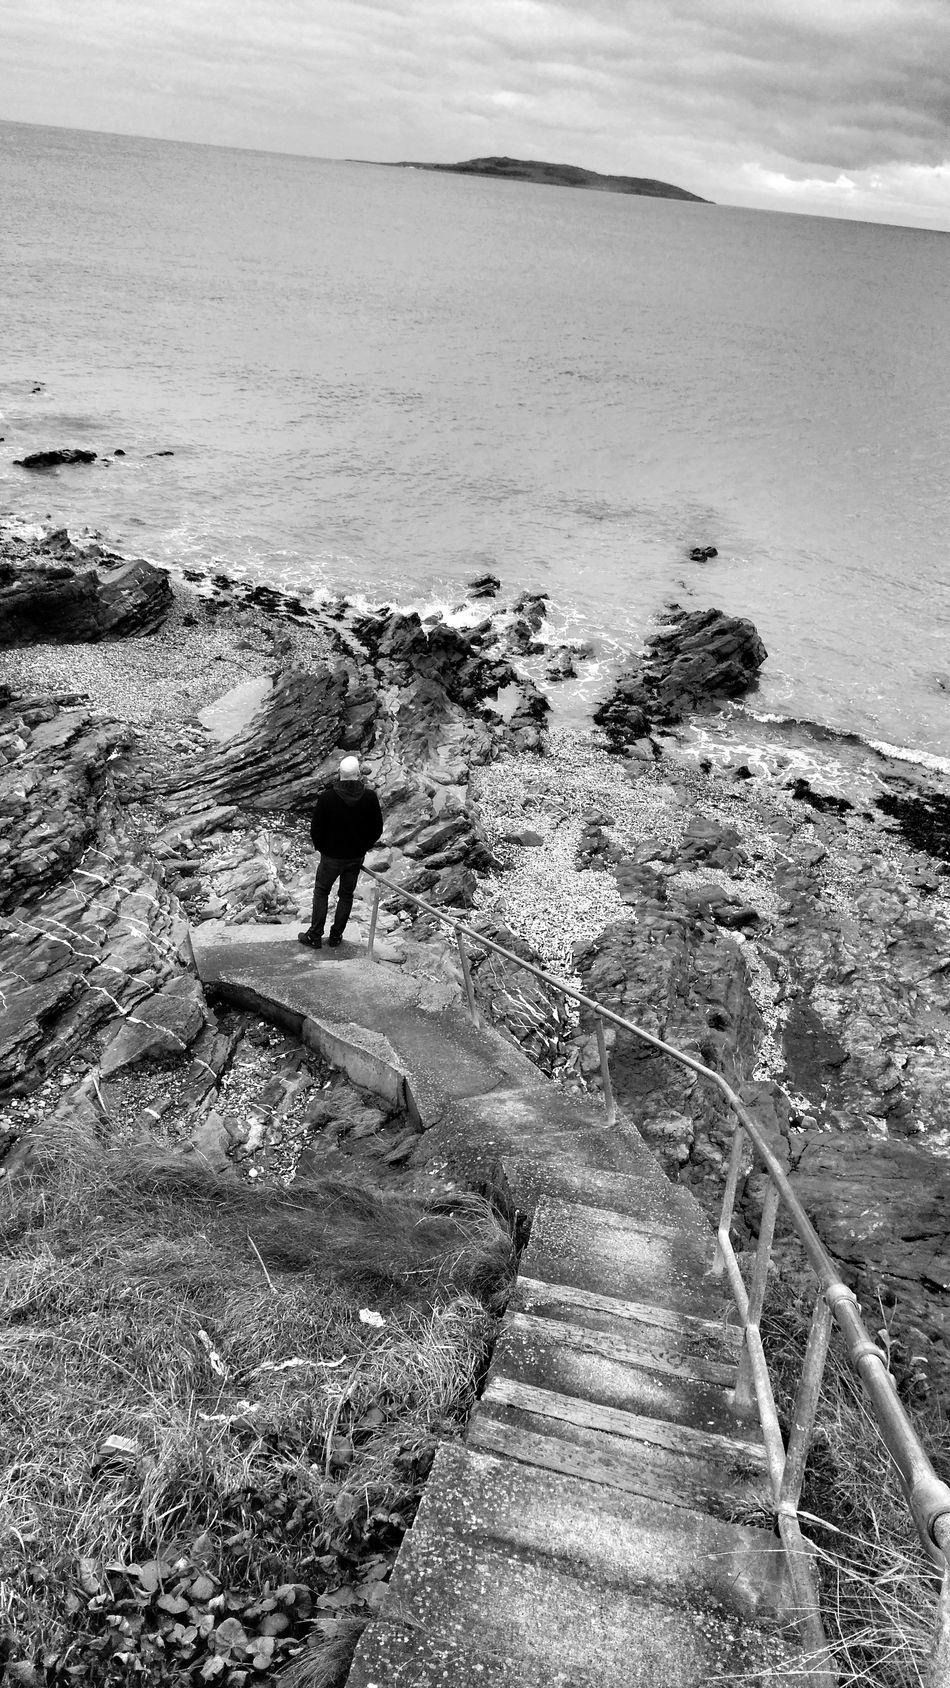 Looking at the sea Sea Beach Water Outdoors Shore Wave Day Scenics Bnw_of_our_world Bnw_europe Bnw_snapshots Bnw_collection Bnw_city Man Looking At Sea Eyem Vision EyeEm Best Shots Sky And Sea Malahide  Irelandinspires Ireland🍀 Coastal Feature Stairs Geometry Stairs To The Water Stairs To The Sea Dublin